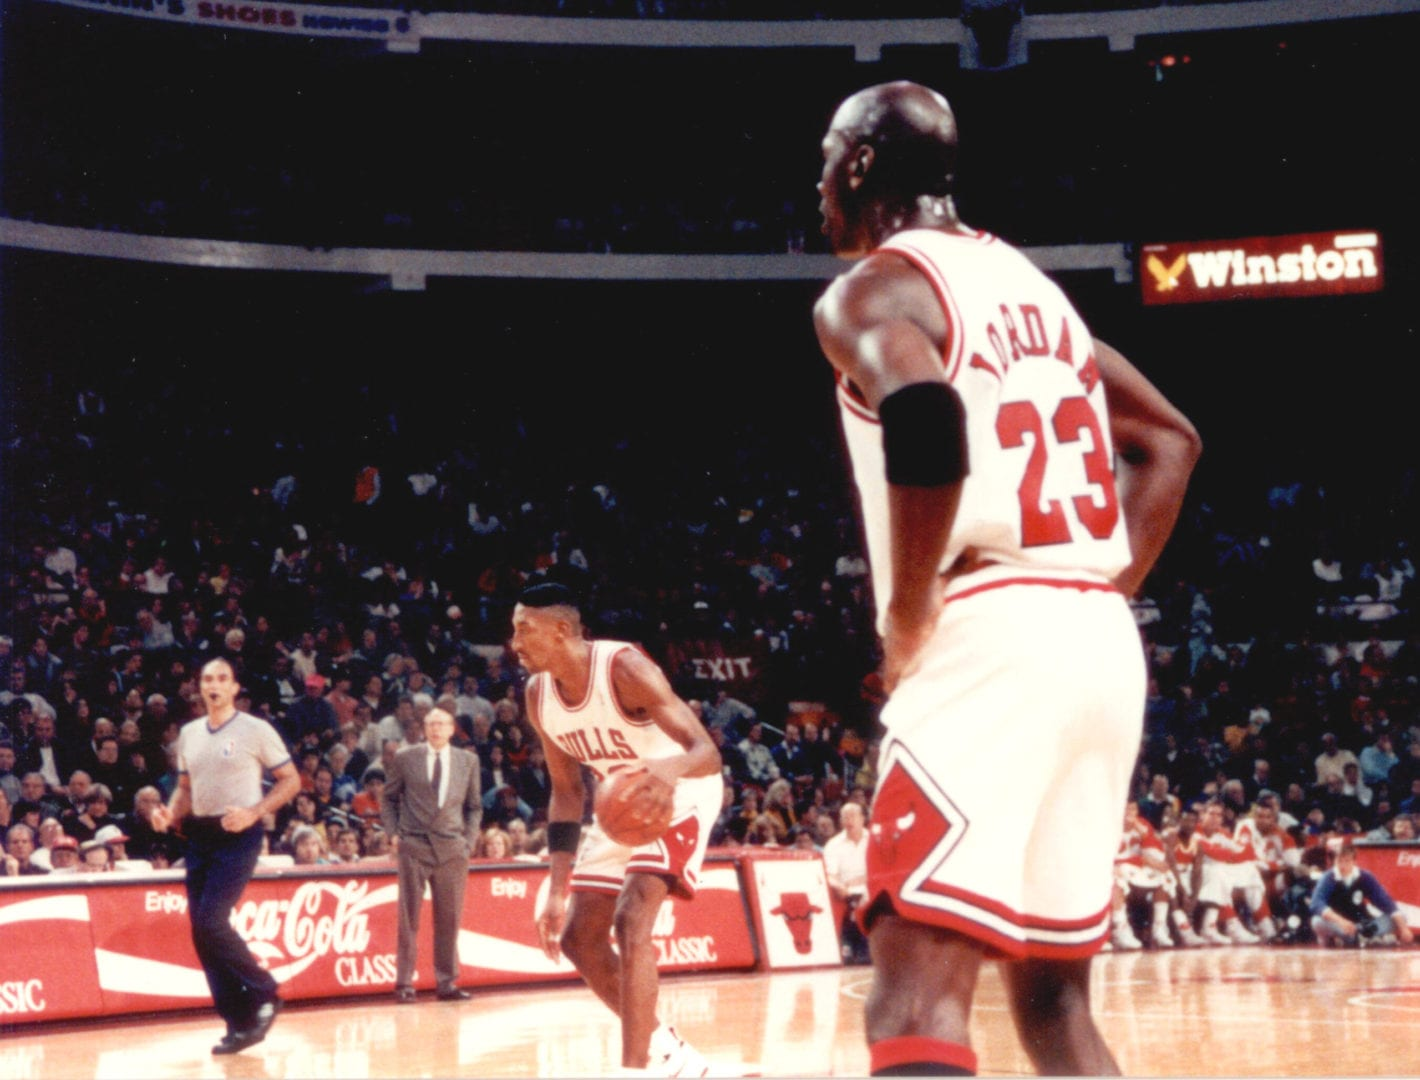 Scottie Pippen and Michael Jordan in the game